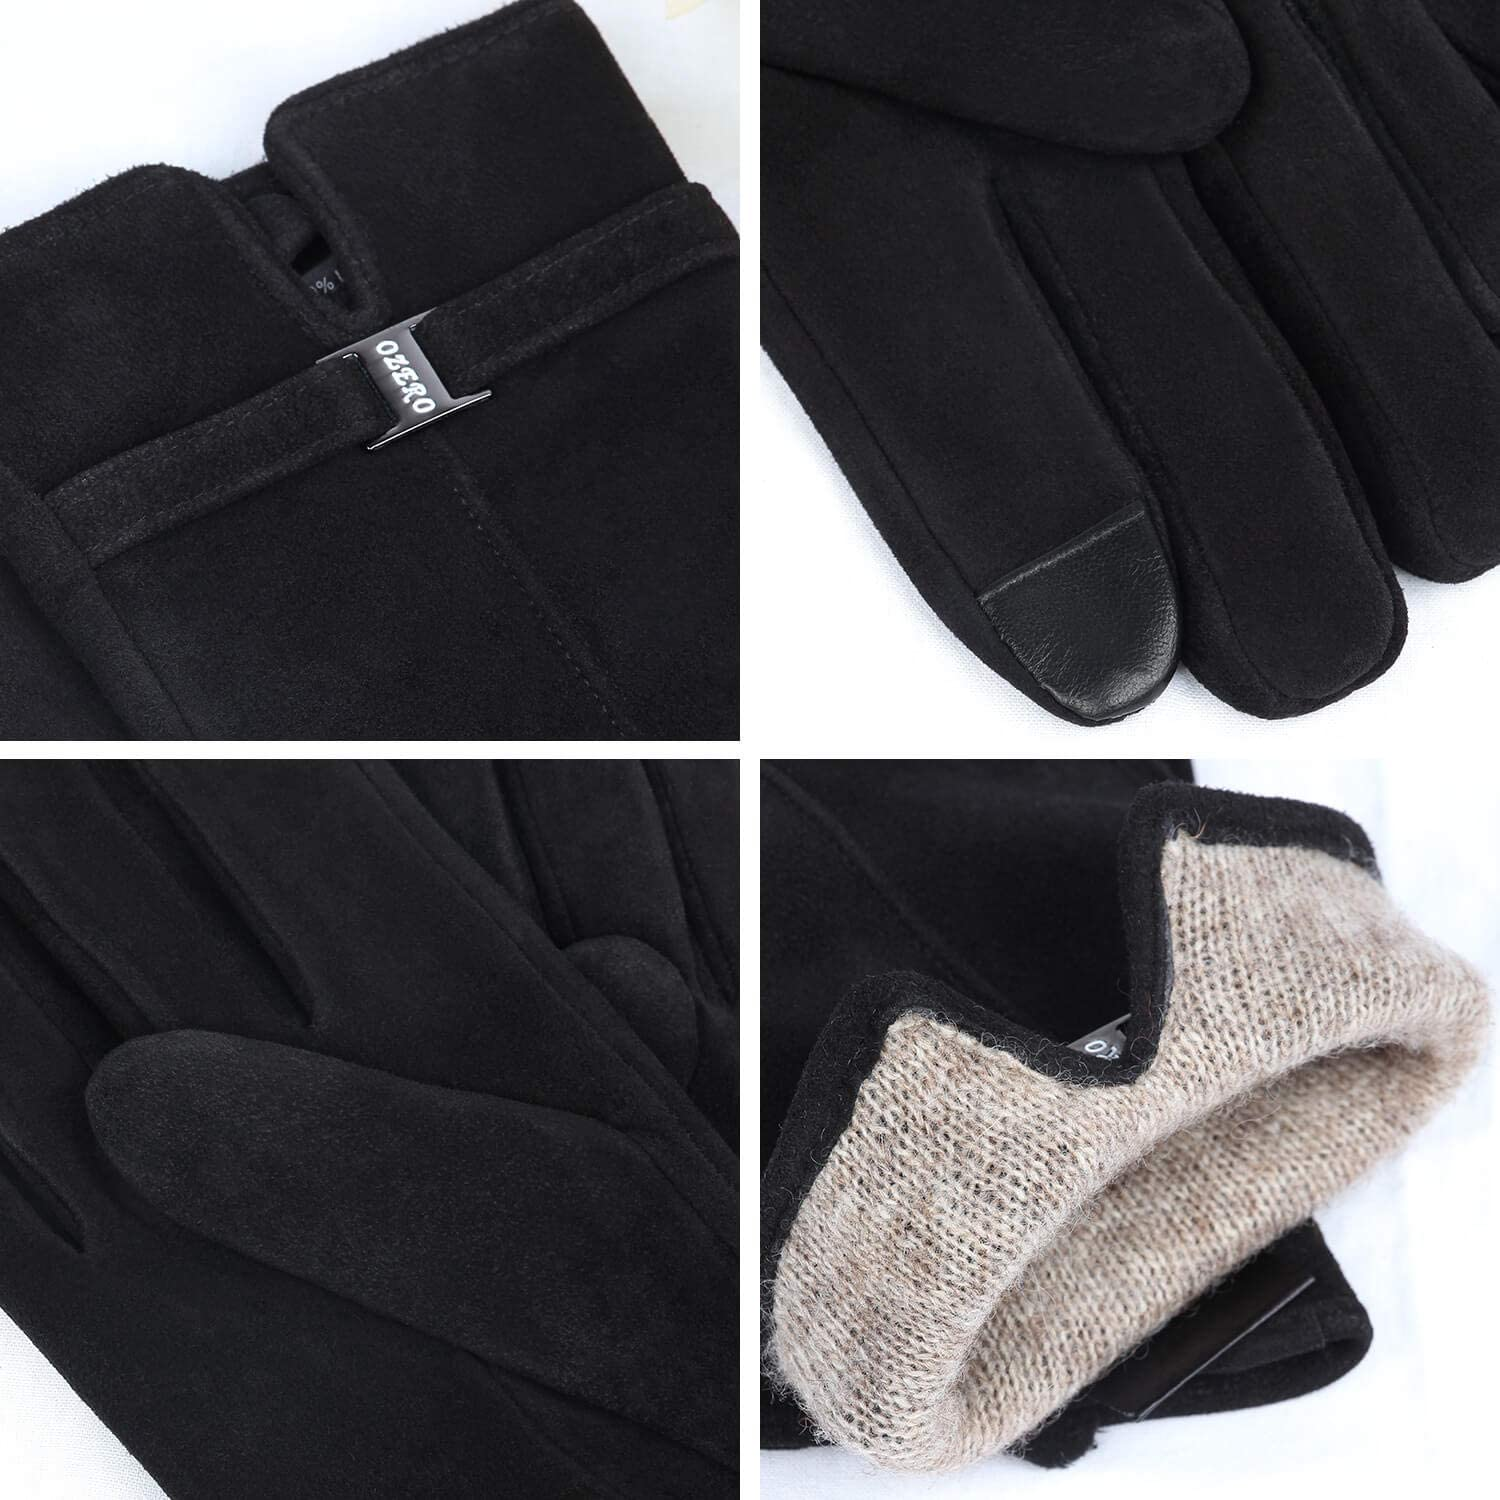 OZERO Women Touch Screen Thermal Gloves for Winter Cycling /& Running /& Motorbike